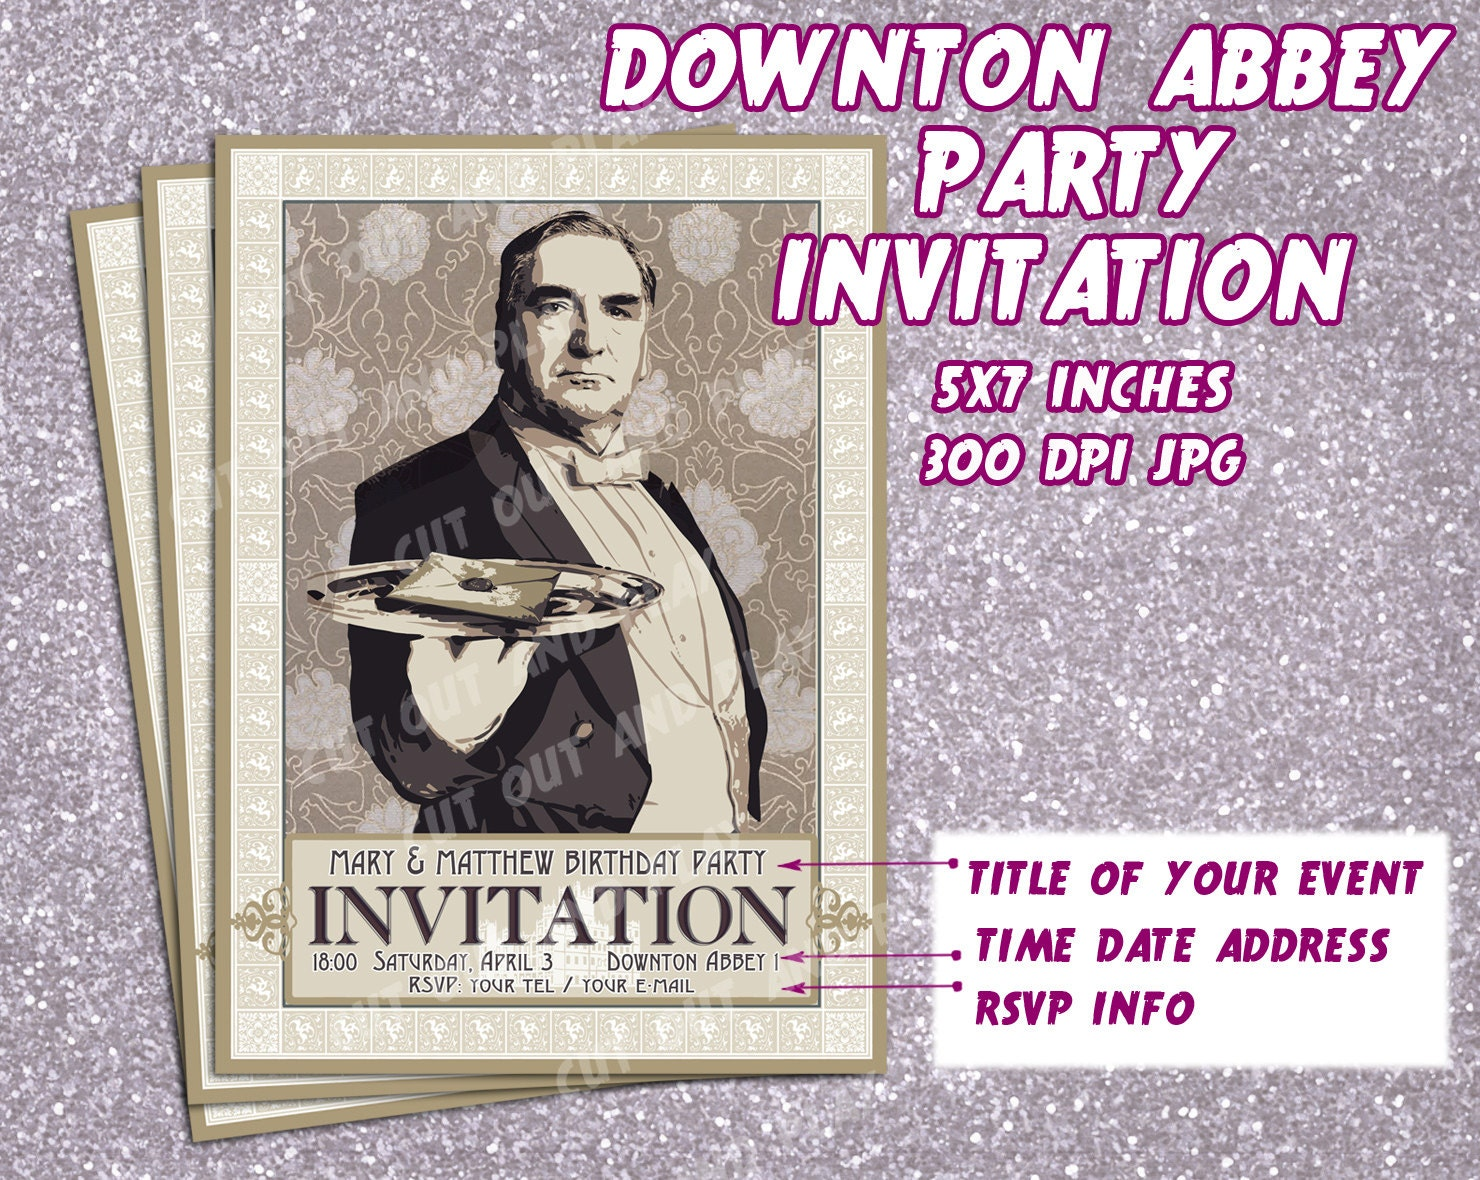 Downton abbey party invitation printable invitation card mr zoom monicamarmolfo Image collections